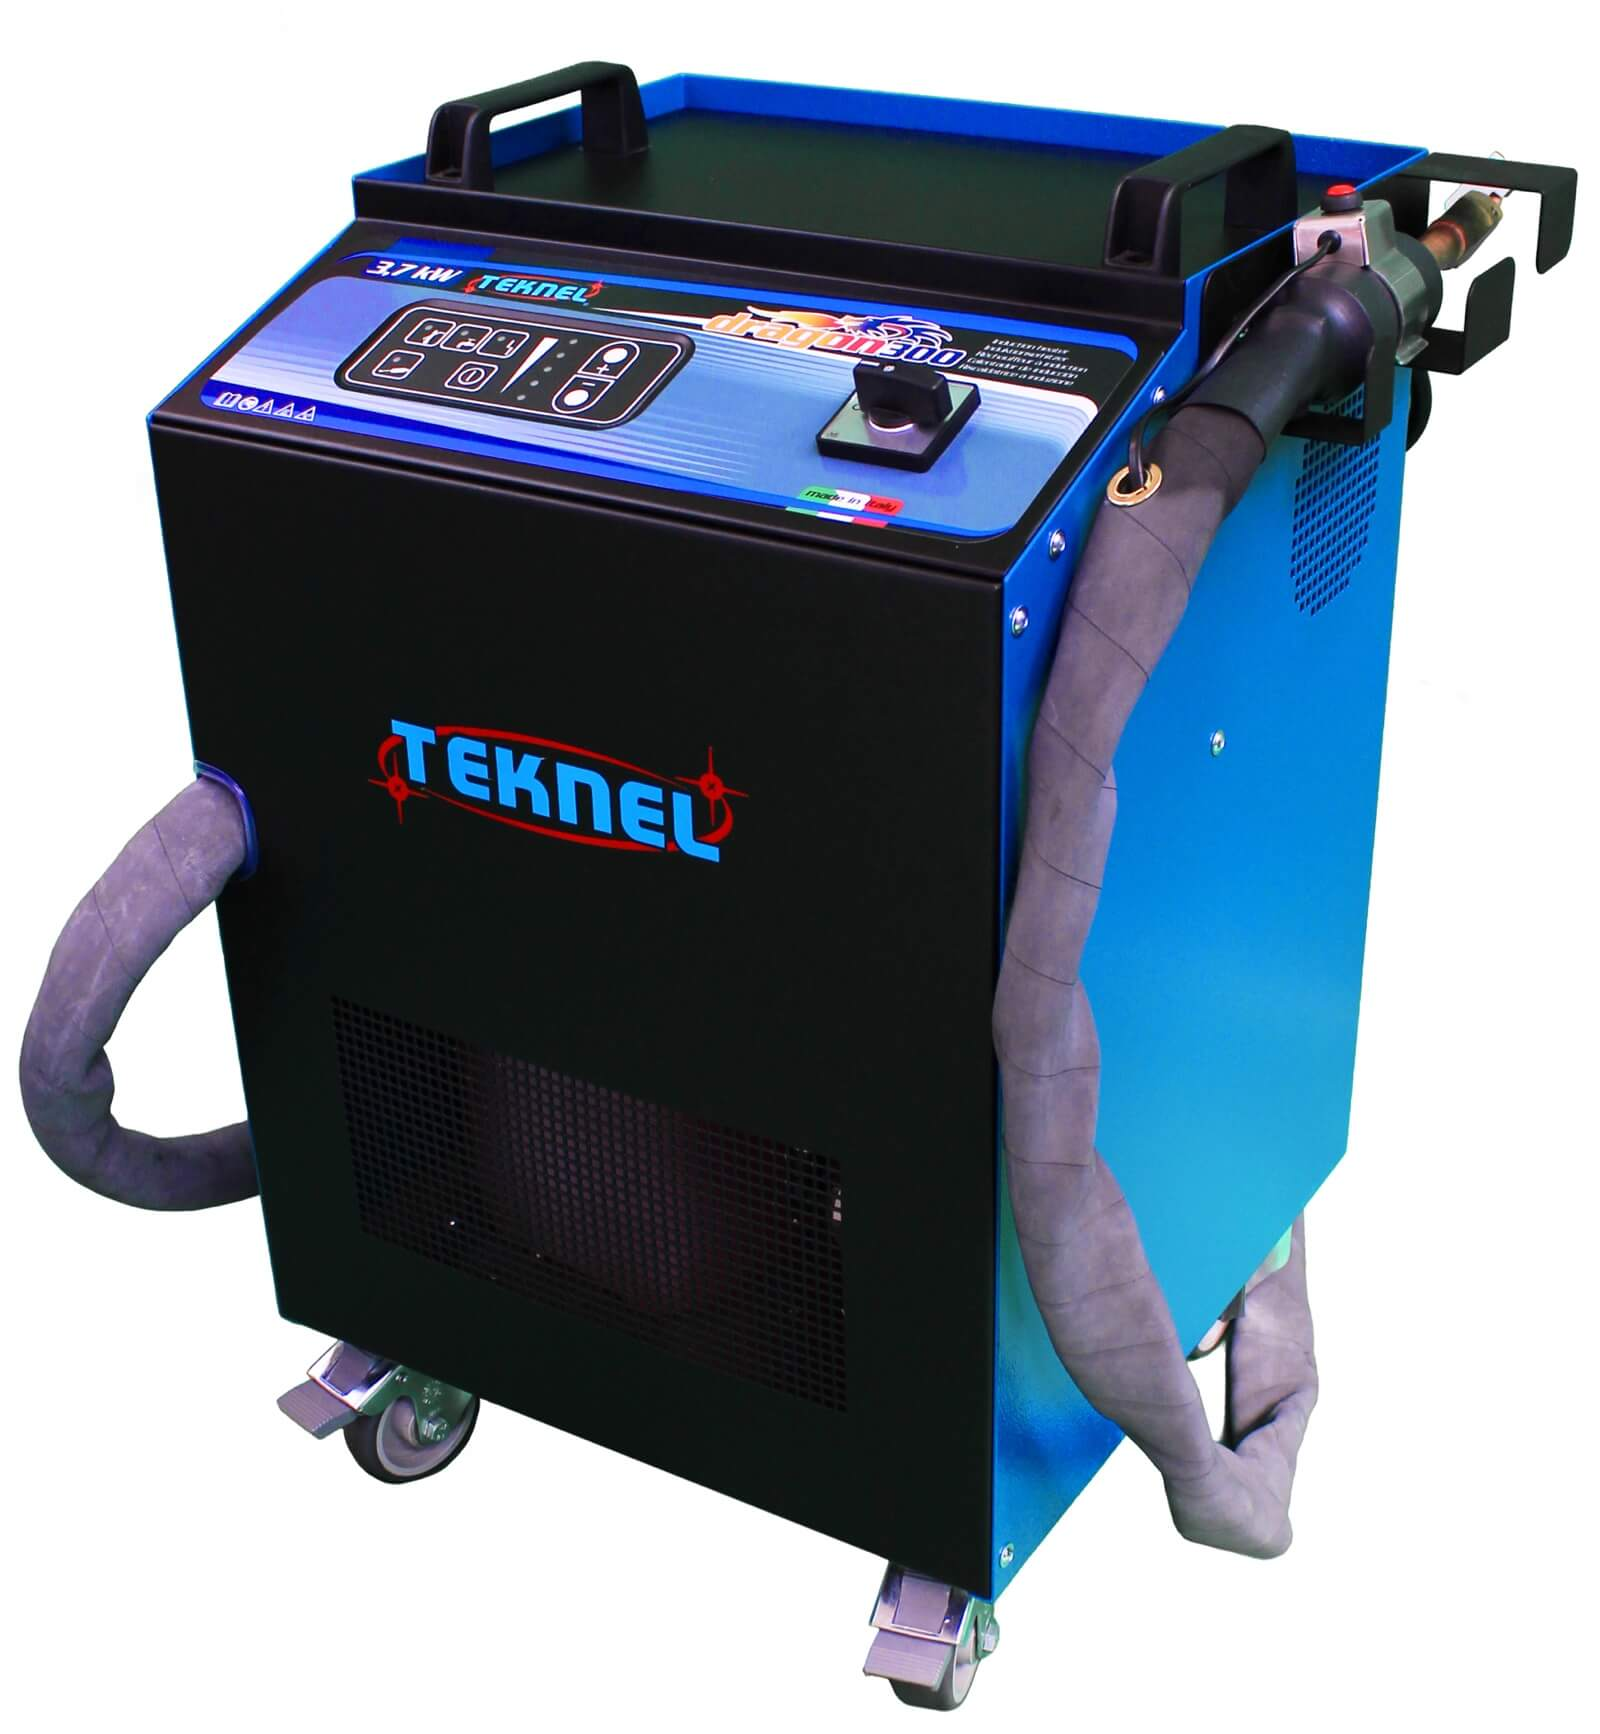 Technical tip: Avoid dangerous accidents with flameless system